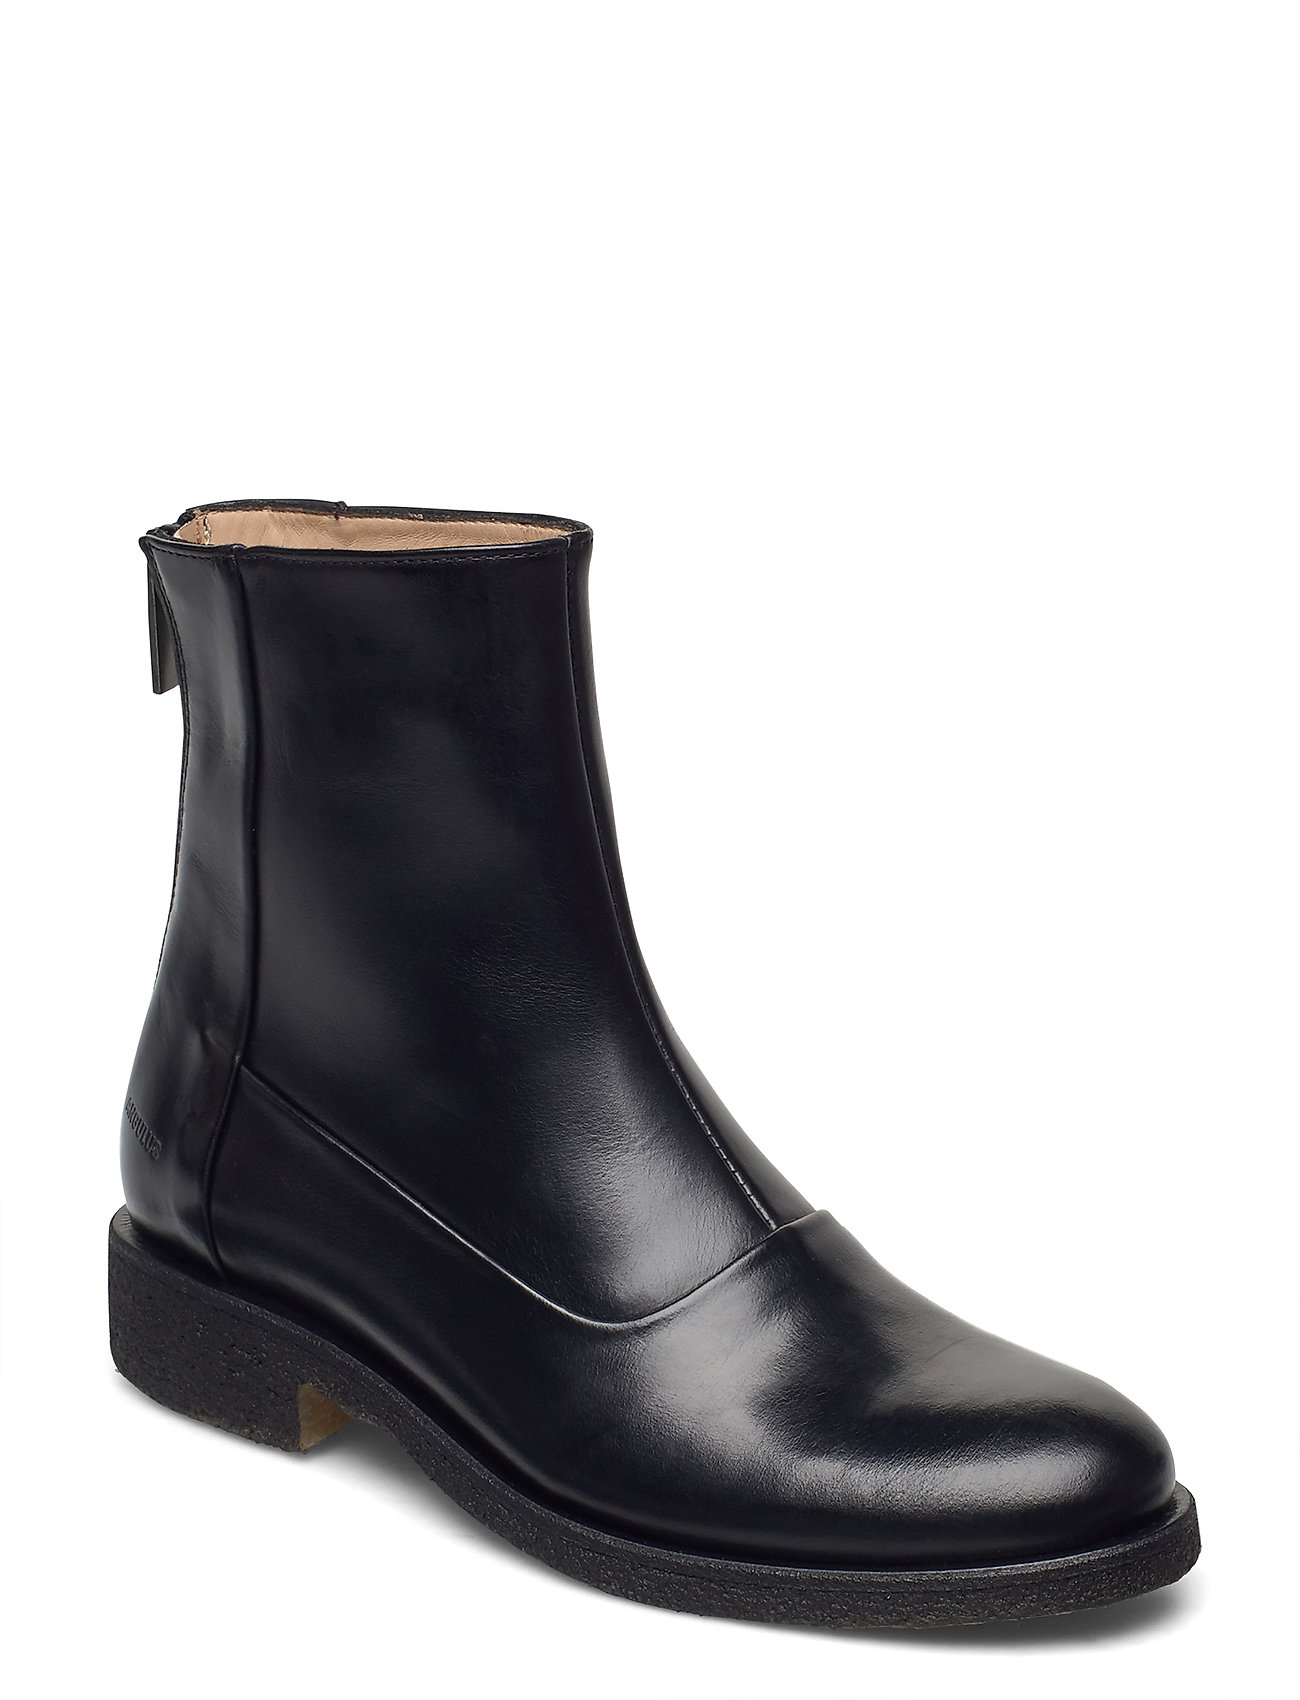 Image of Booties - Flat - With Zipper Shoes Boots Ankle Boots Ankle Boot - Flat Sort ANGULUS (3440209323)